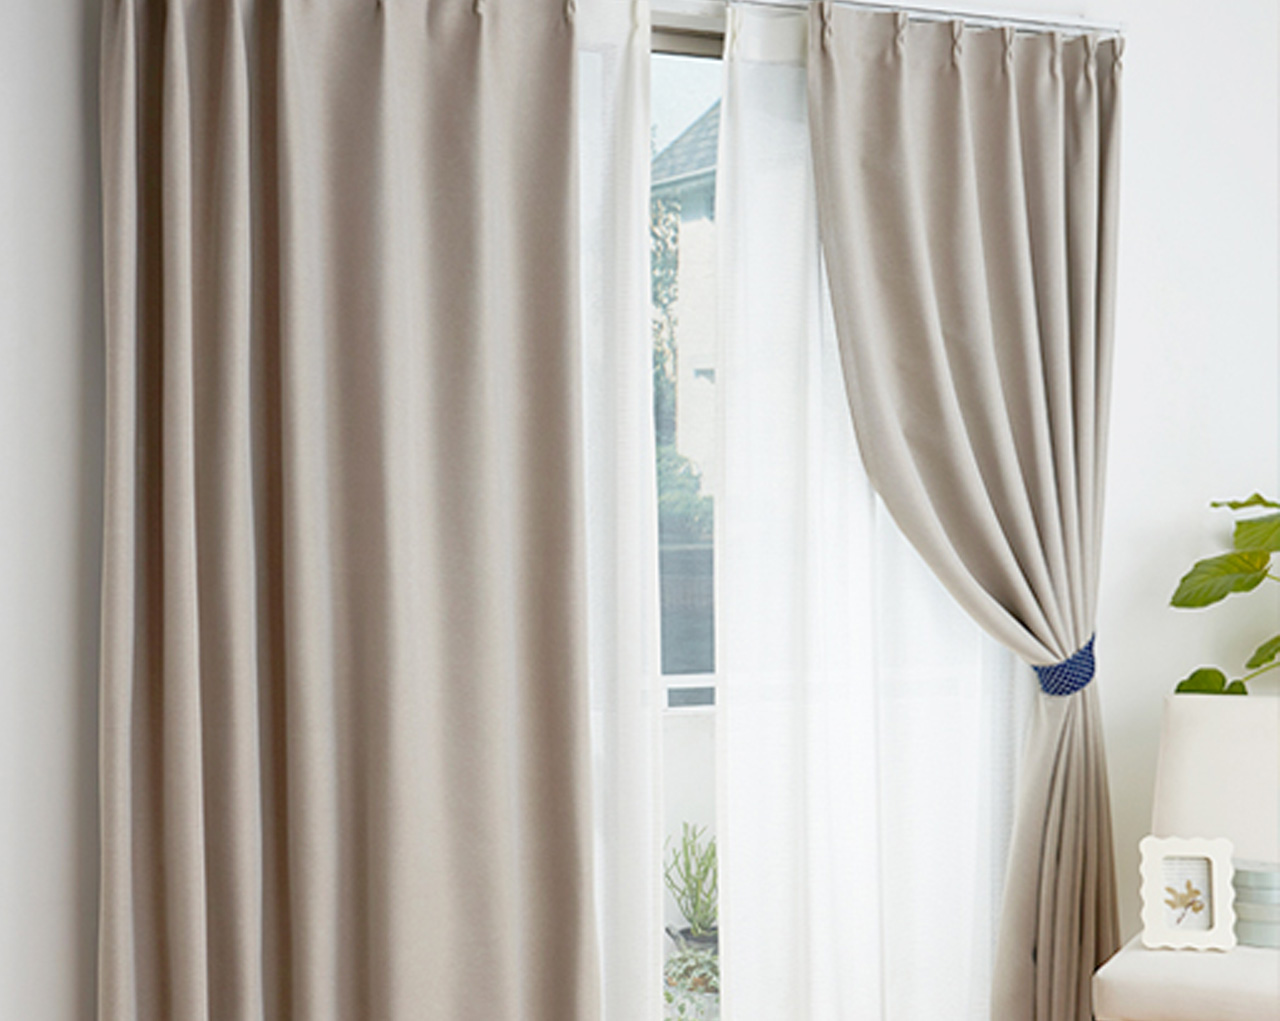 Cortinas decorativas Black Out  Blancos Poblanos